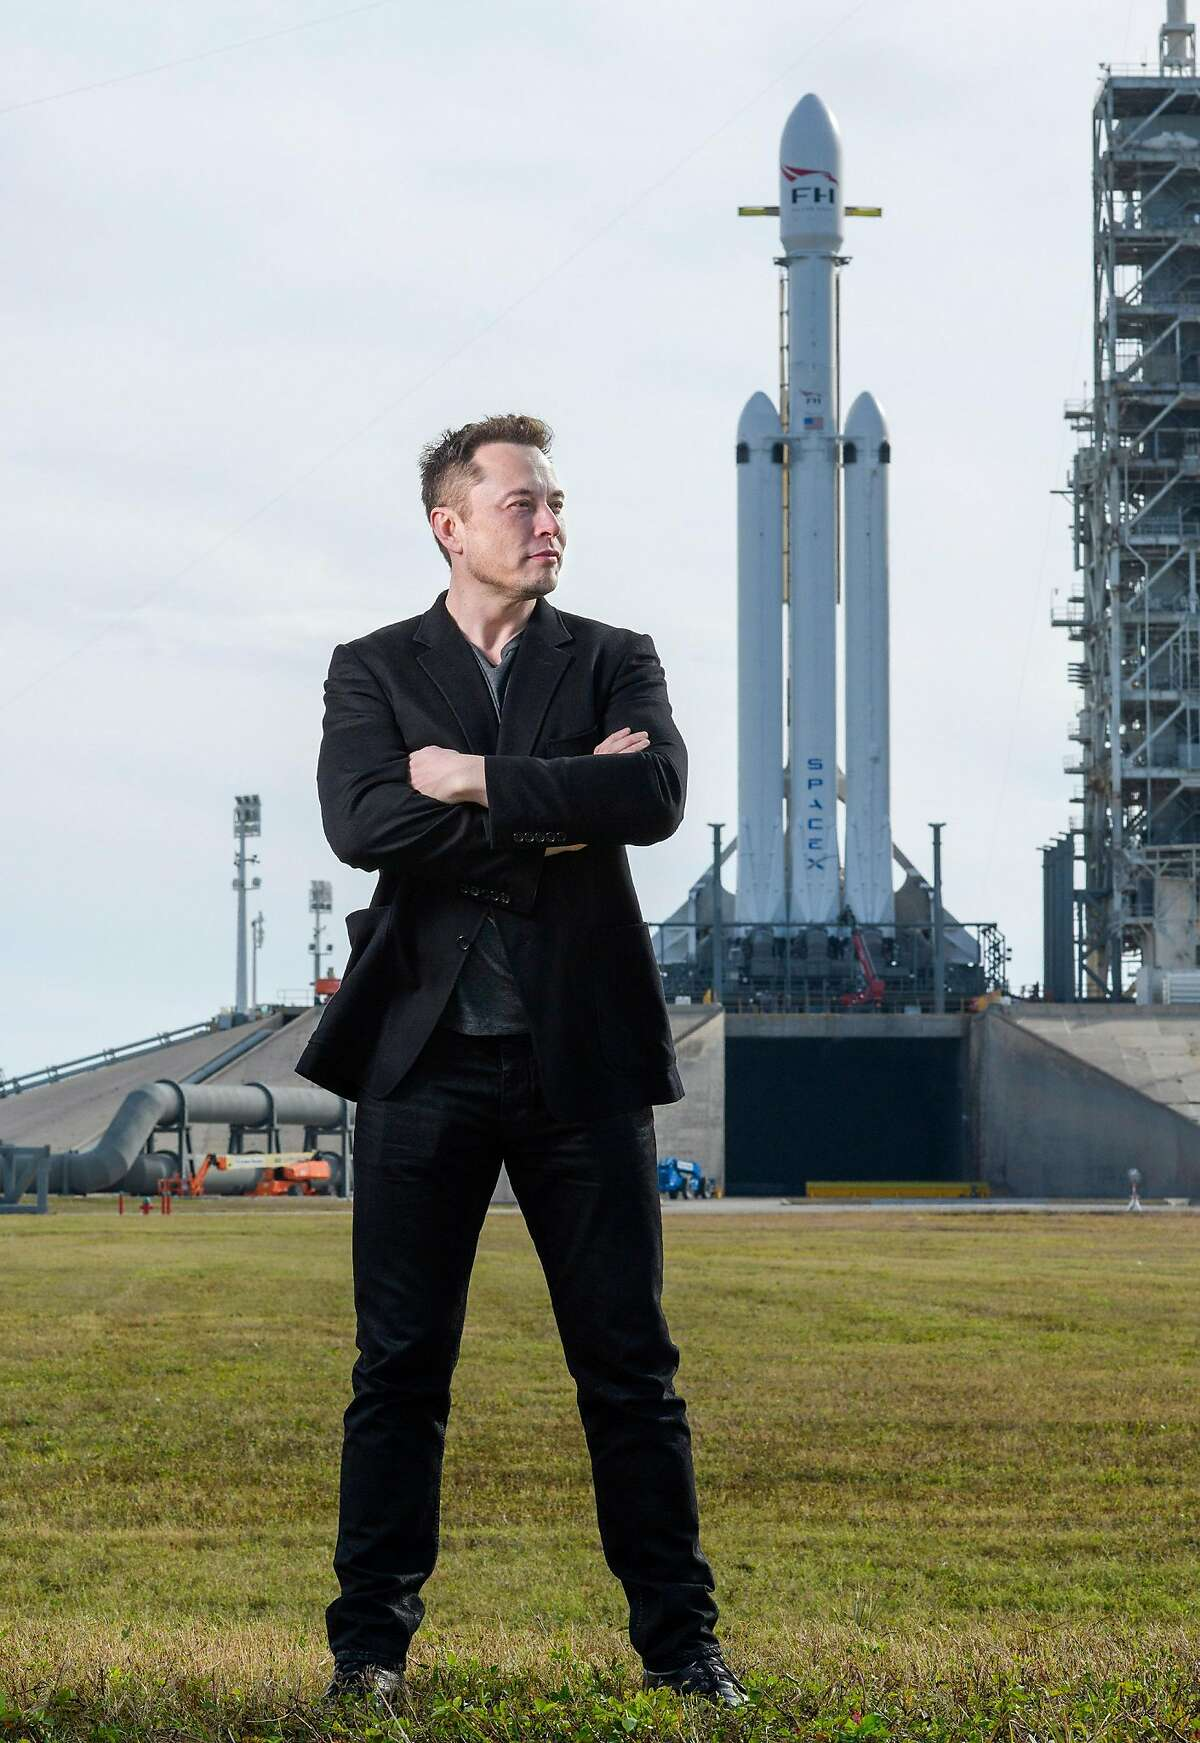 Elon Musk, founder of SpaceX, with the company�s Falcon Heavy rocket at Launch Pad 39A at NASA�s Kennedy Space Center in Cape Canaveral, Fla., Feb. 5, 2018. The rocket�s demonstration flight will carry a Tesla Roadster into space. (Todd Anderson/The New York Times)